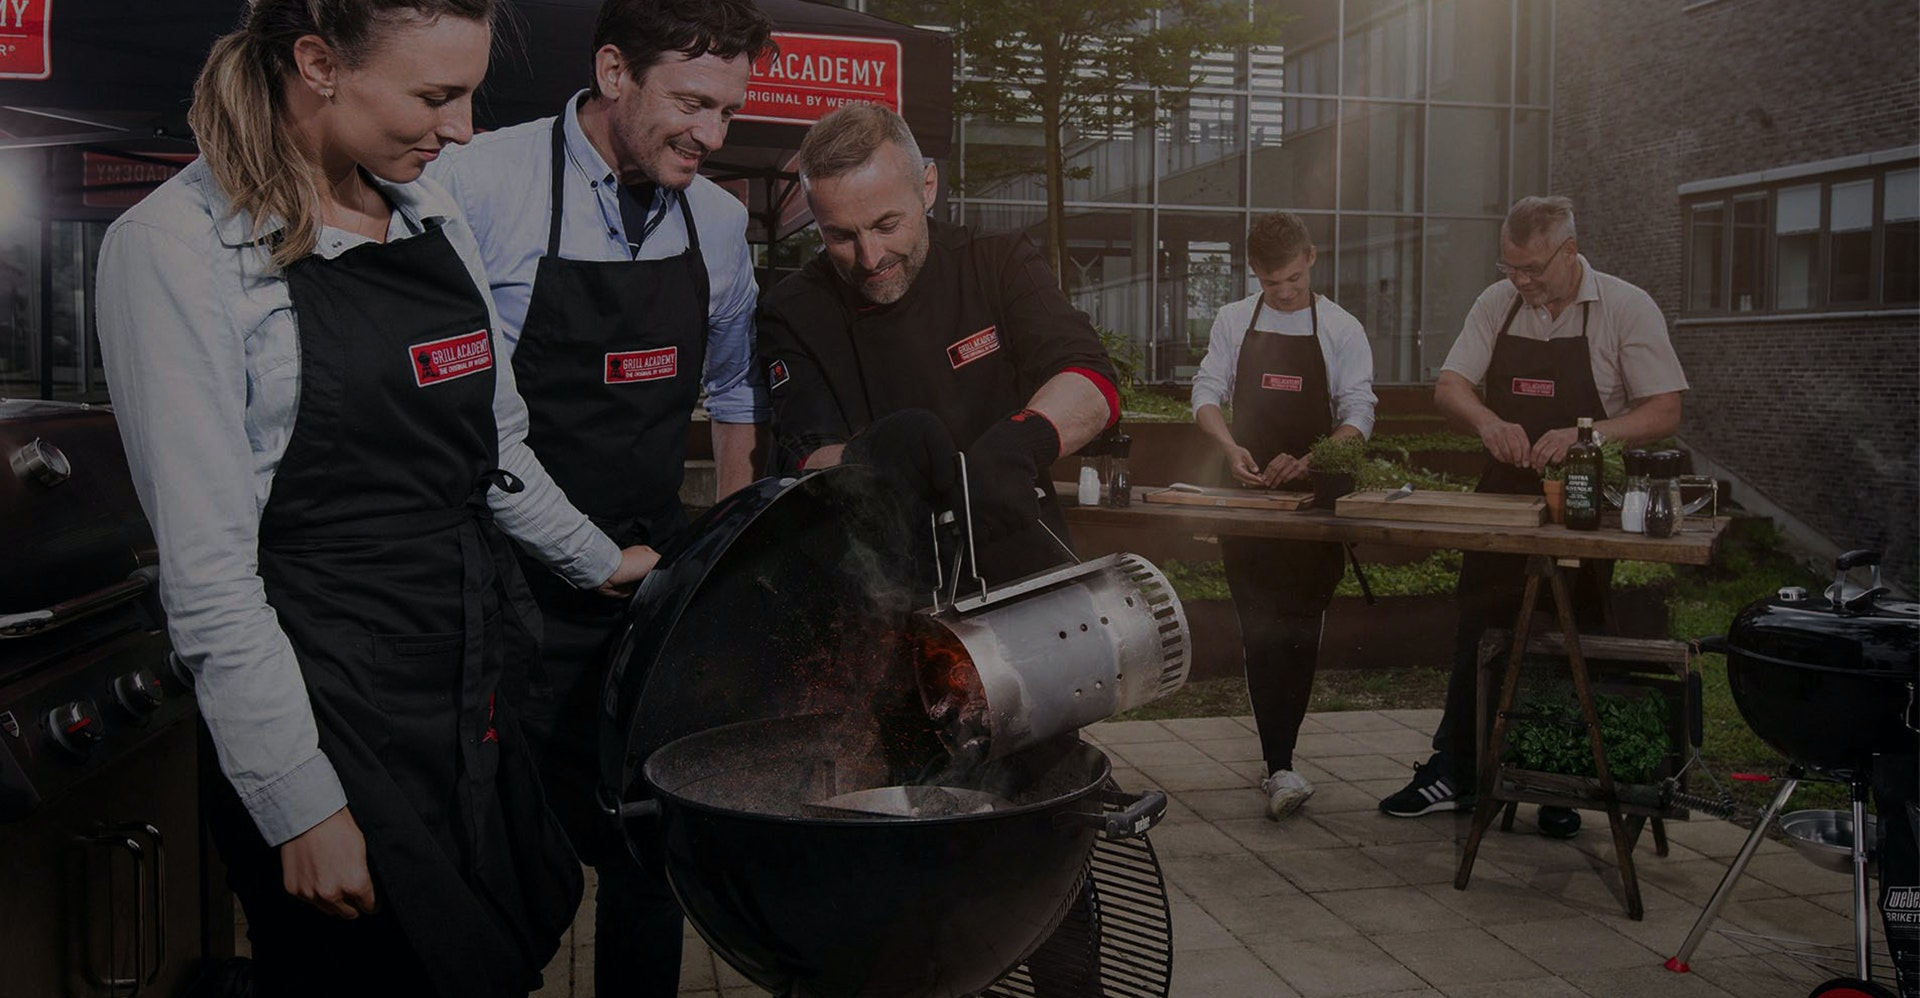 Get A Free Grill Academy Session (Worth SG$150)